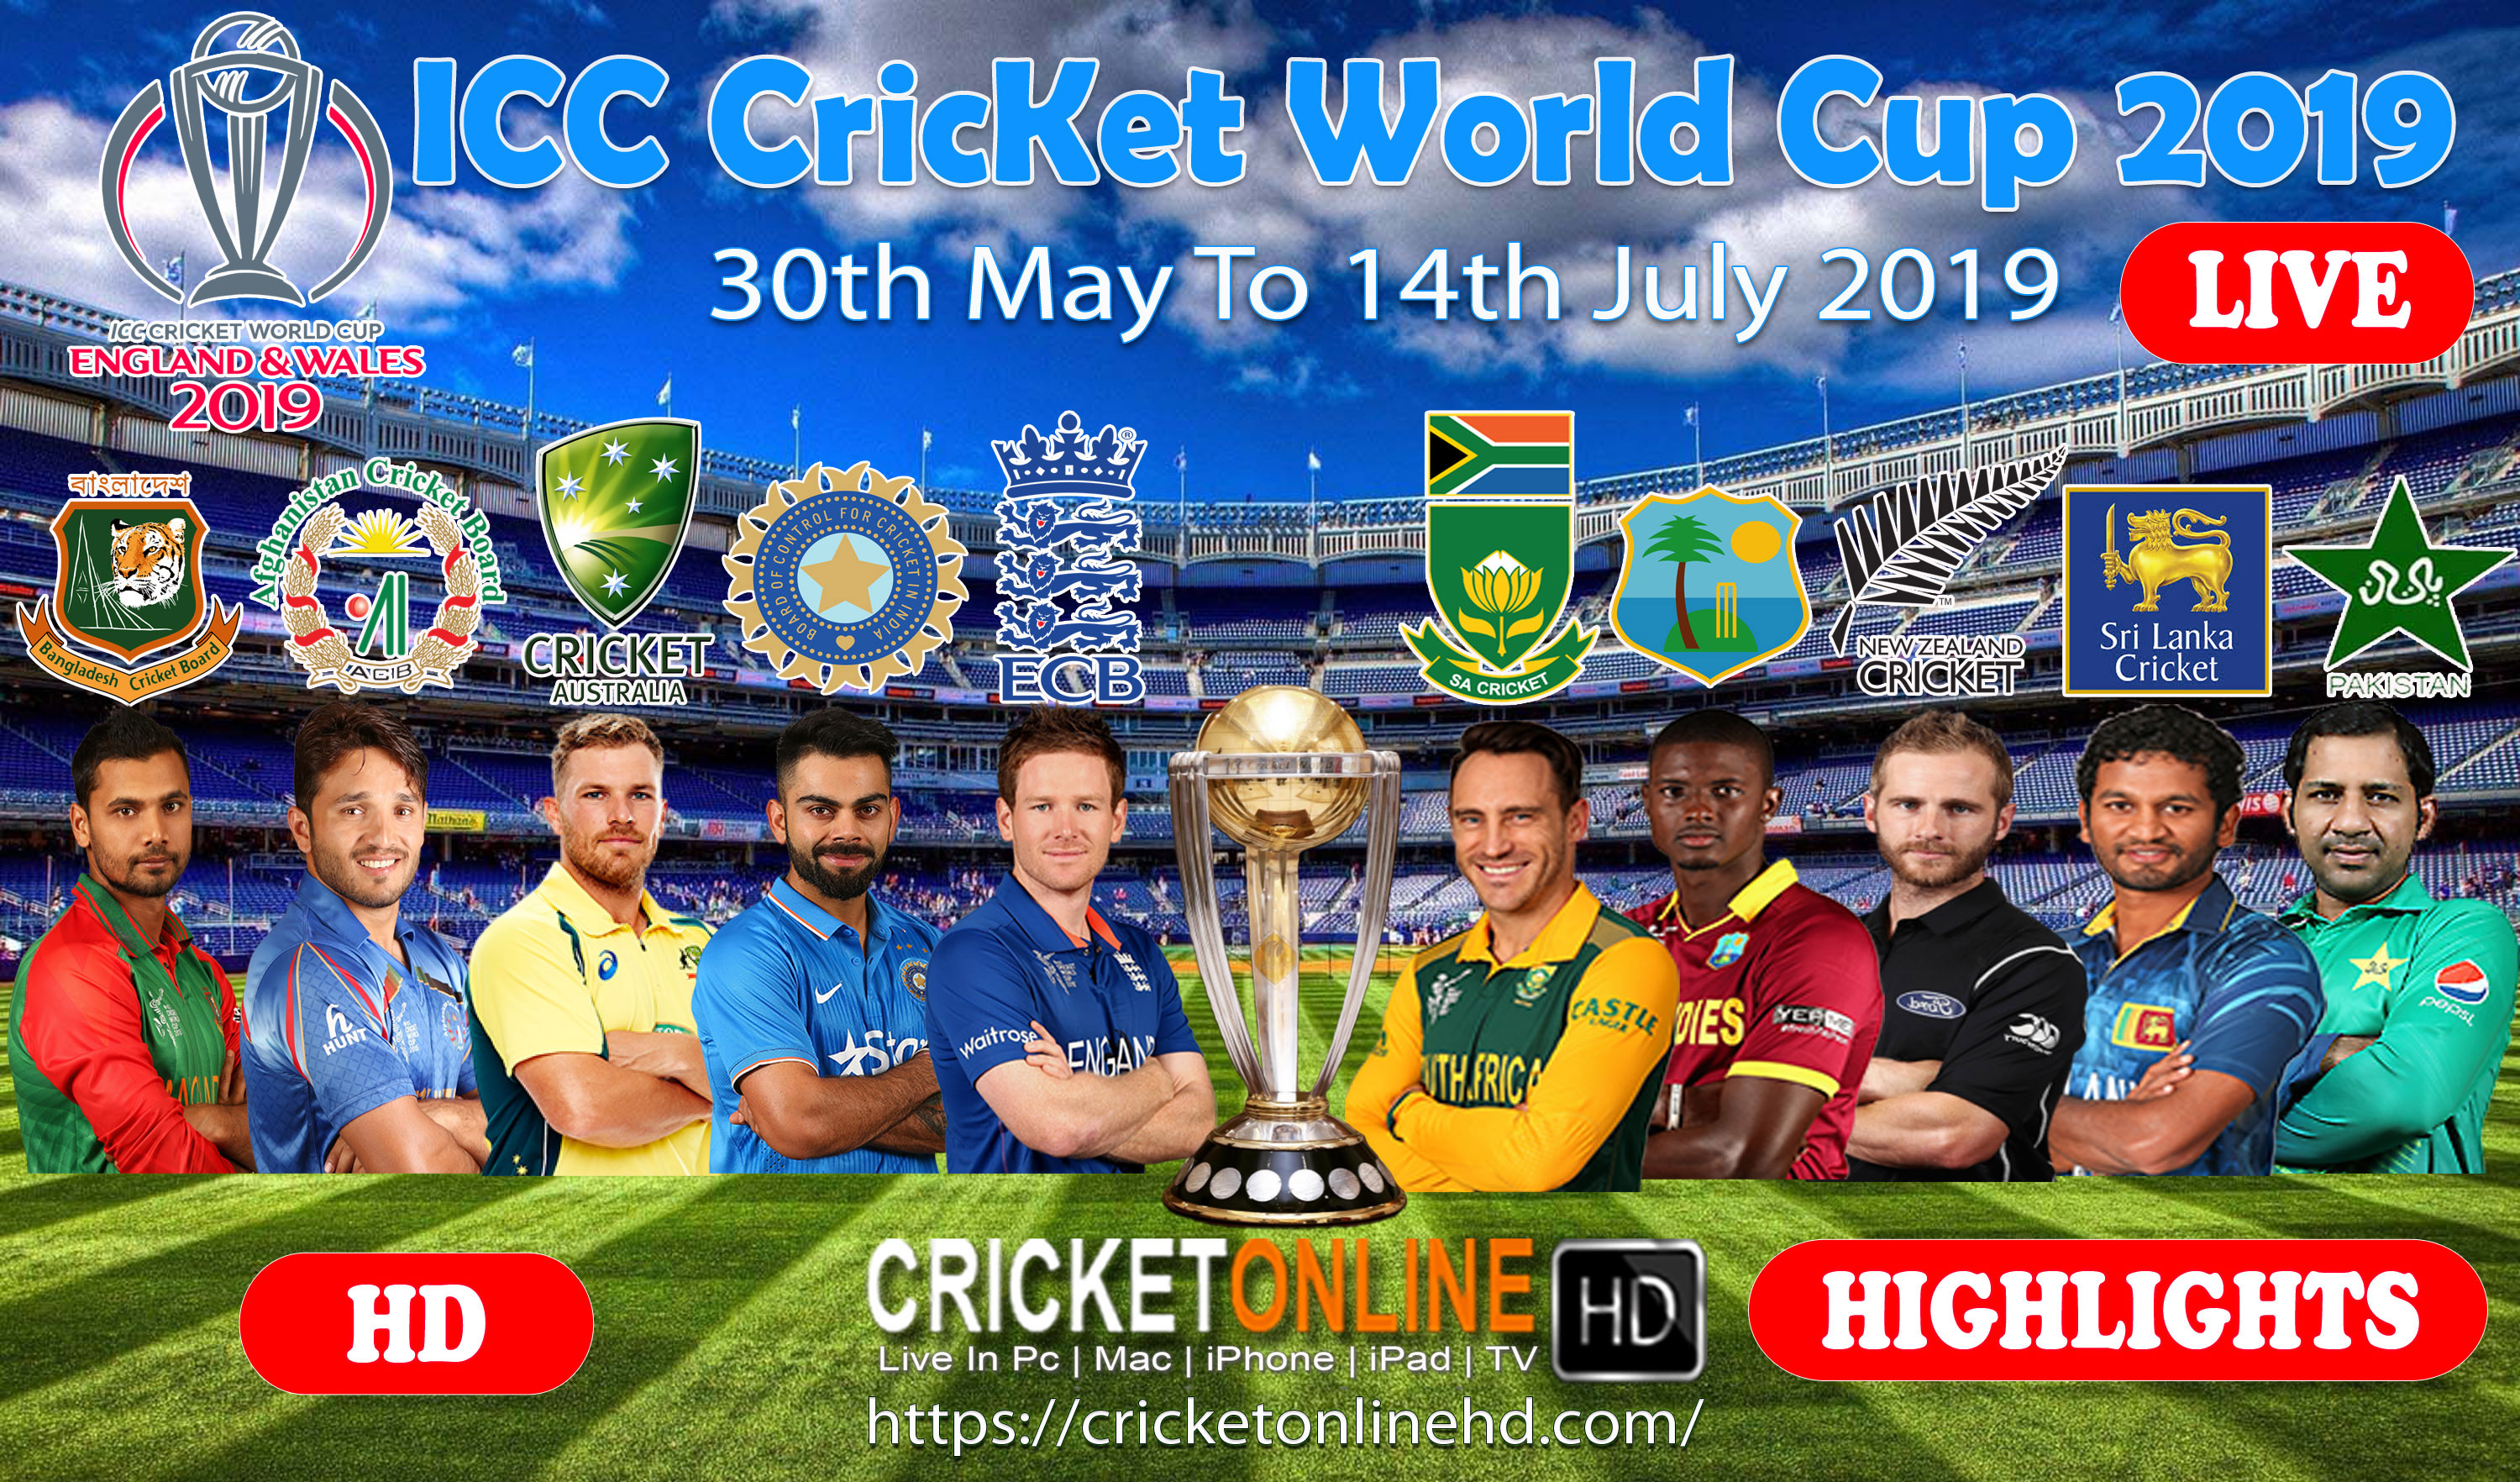 Icc Cricket World Cup 2019 Live Streaming HD